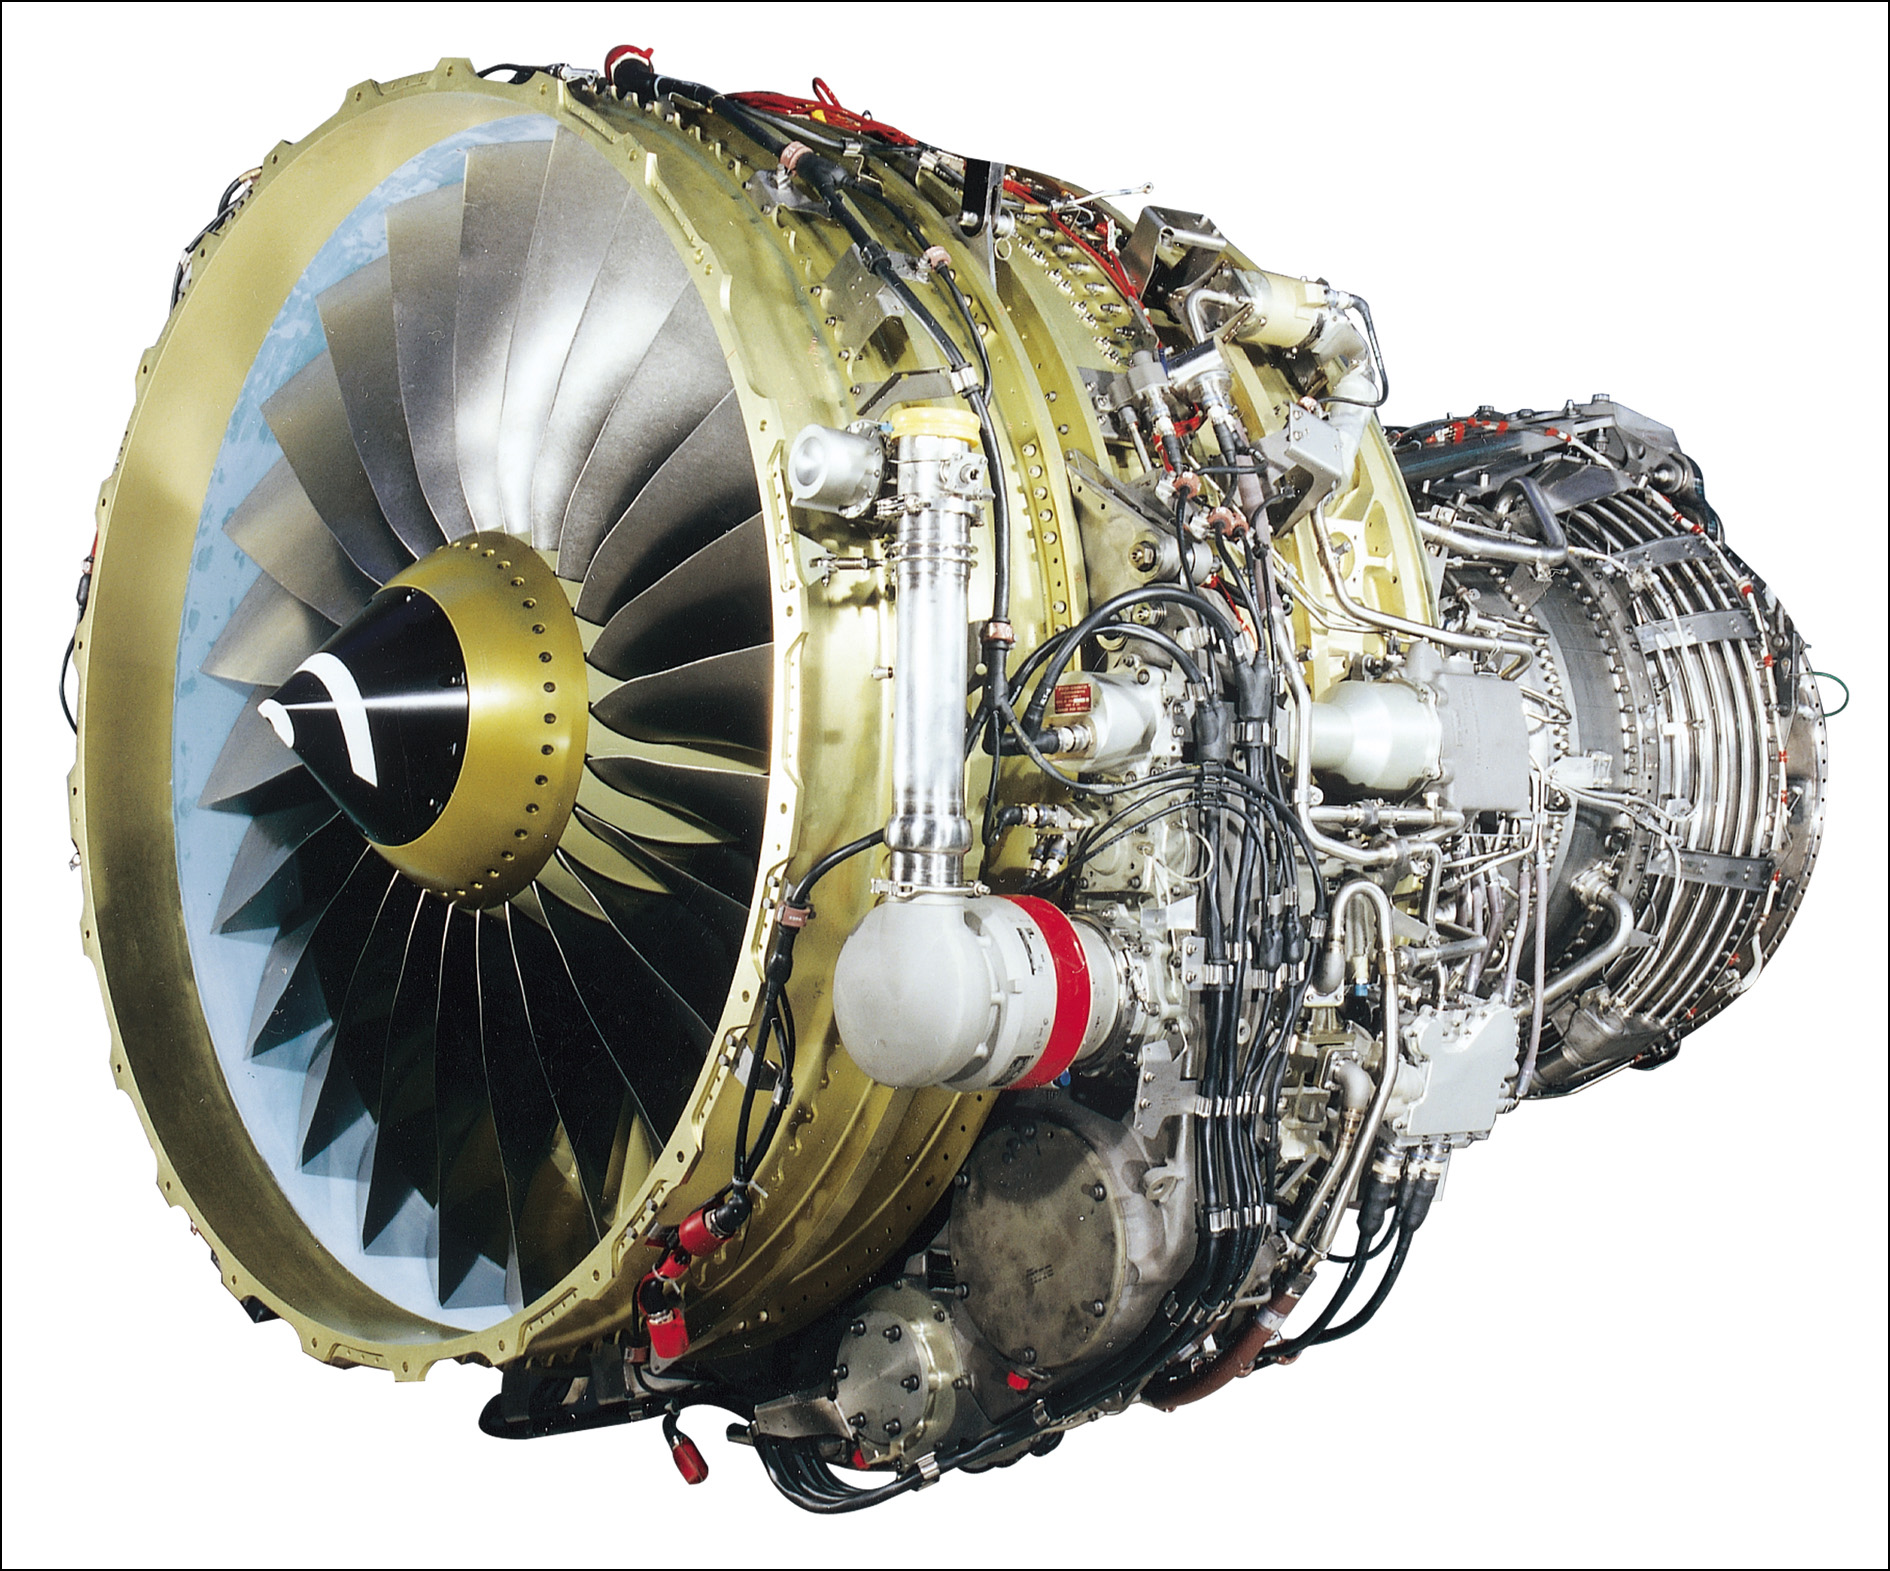 cfm56 engine diagram  cfm56  get free image about wiring